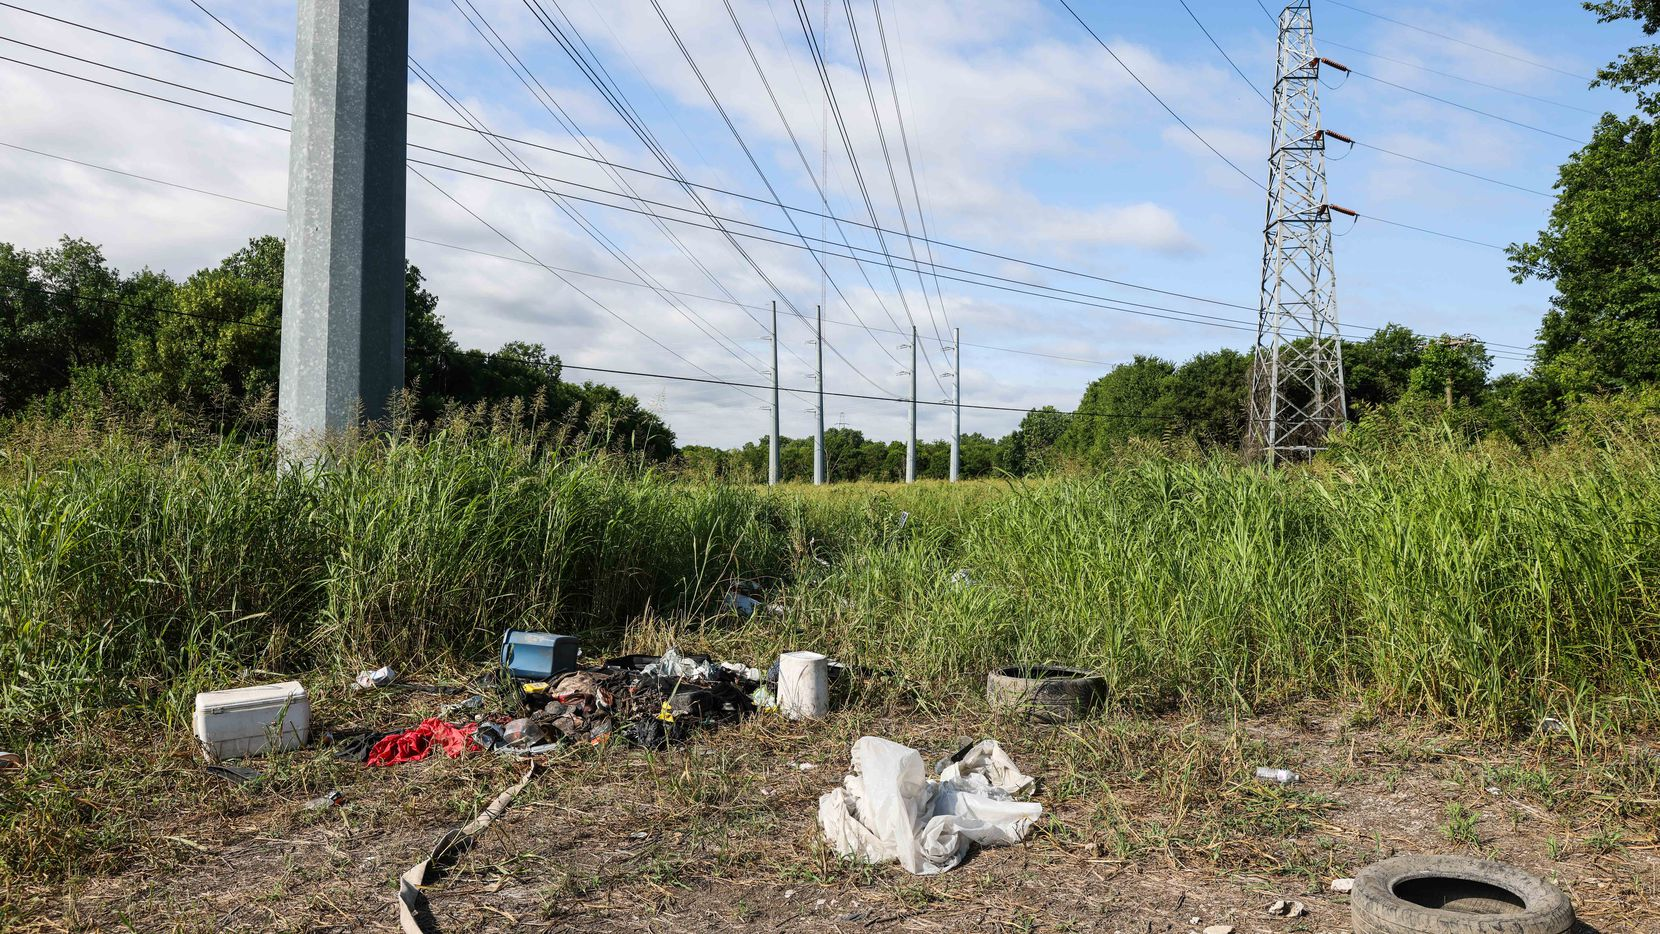 Trash, cast-off belongings and other illegal dumping are visible through much of the undeveloped land that will  become part of the Trinity Forest Spine Trail.